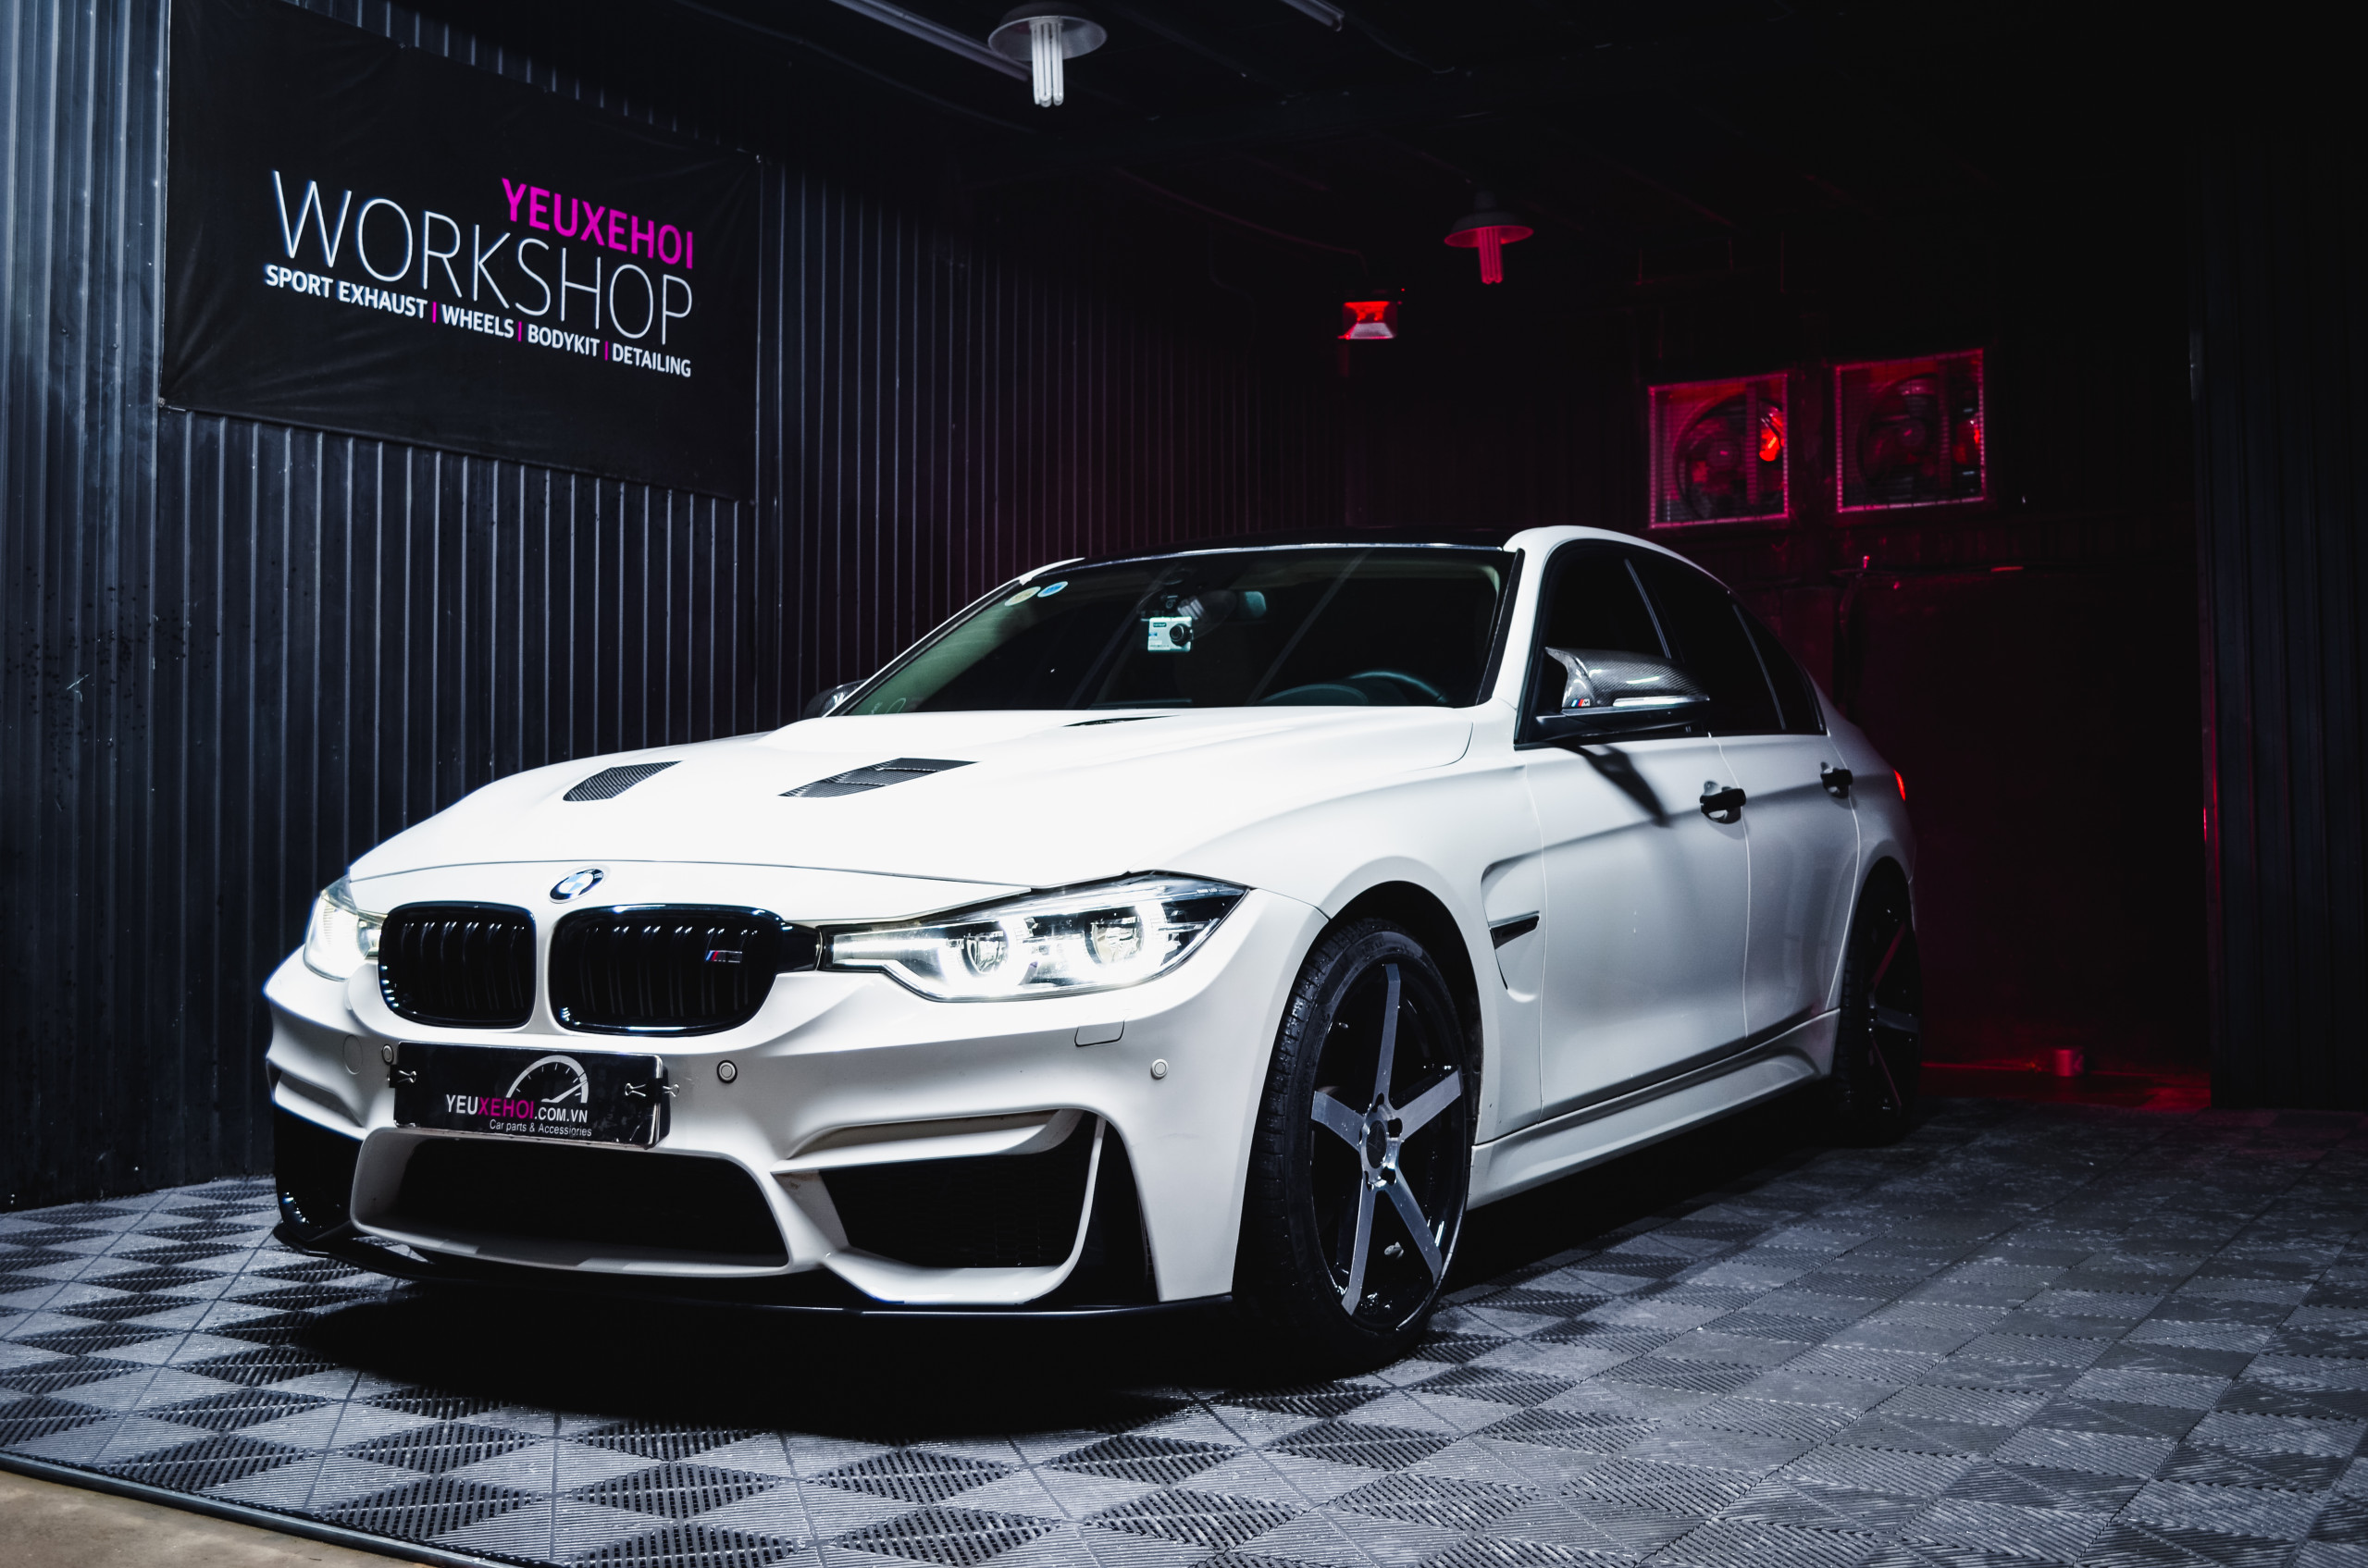 BMW F30 B48 FULL BODYKIT M3 / 305FORGED WHEEL/ RES EXHAUST